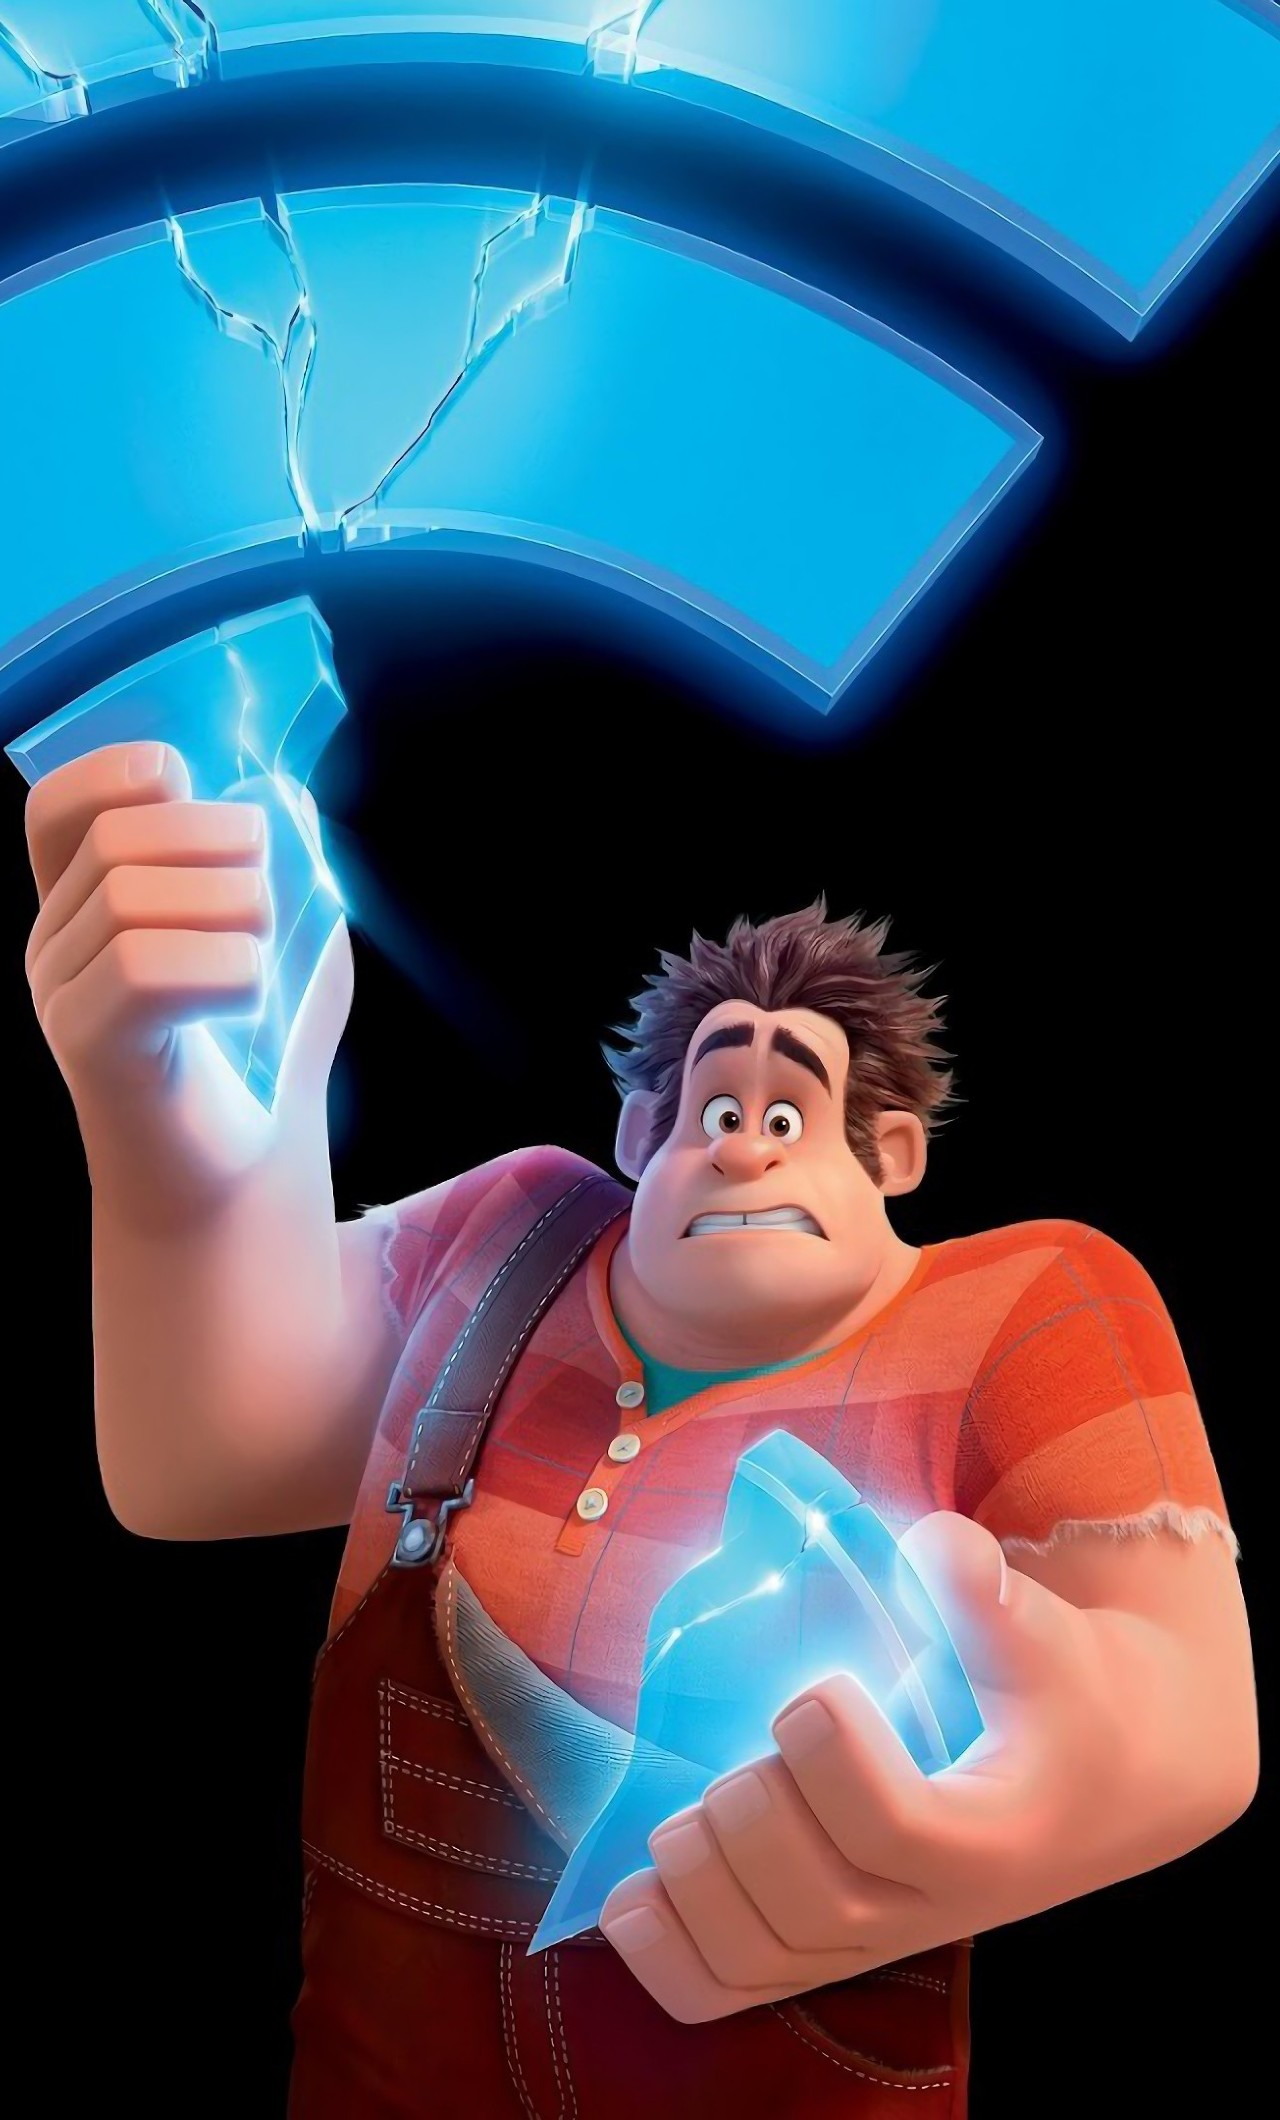 1280x2120 Ralph Breaks The Internet Wreck It Ralph 2 Iphone 6 Plus